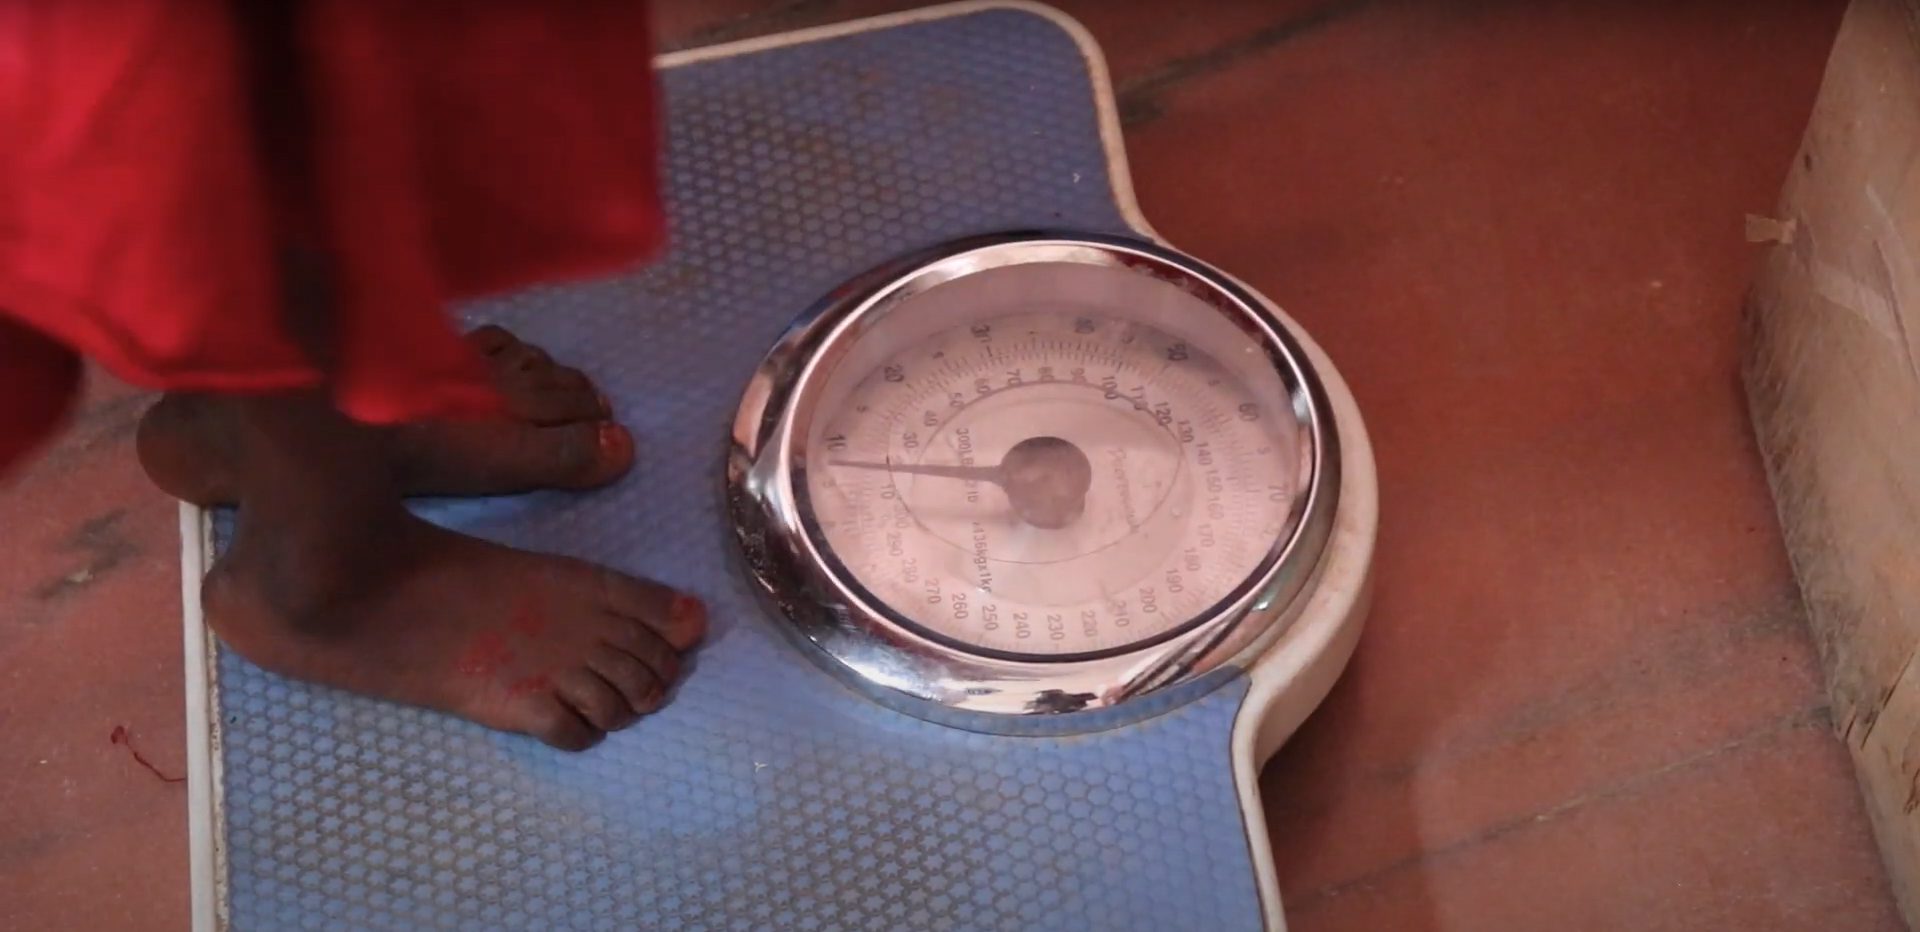 A child's feet standing on top of a scale